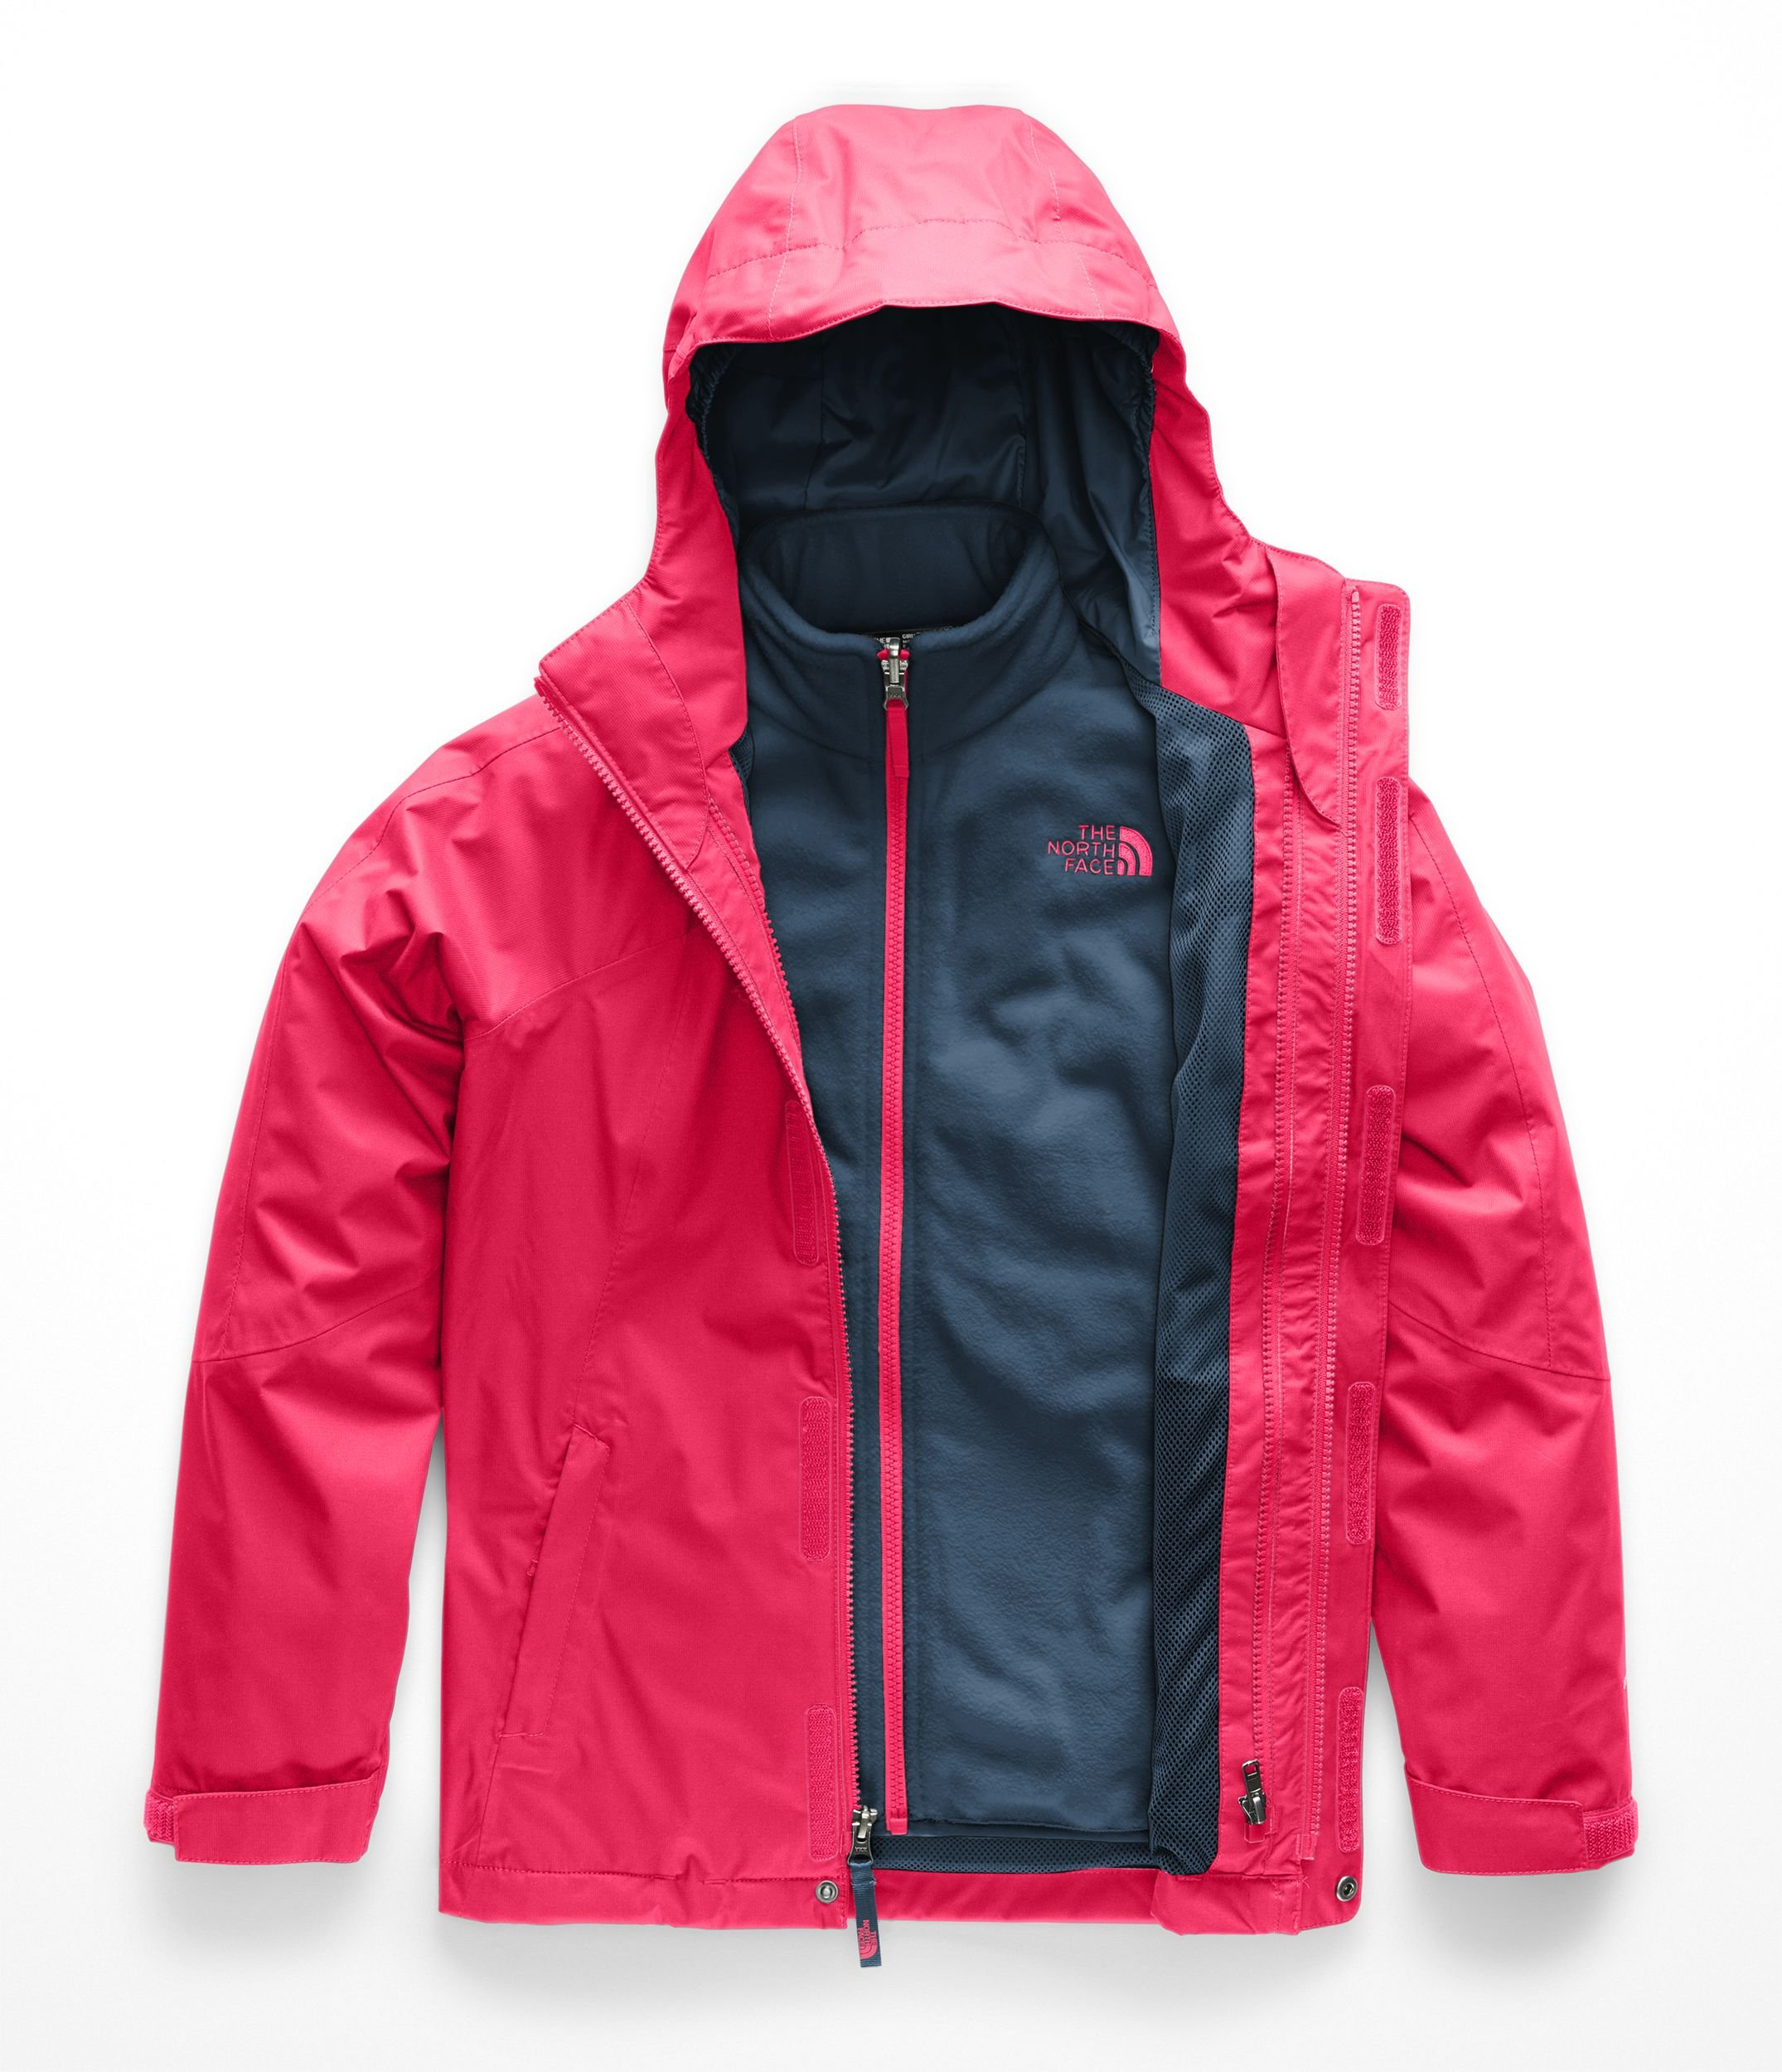 The North Face Girl's Mt View Triclimate Jacket - Atomic Pink - L